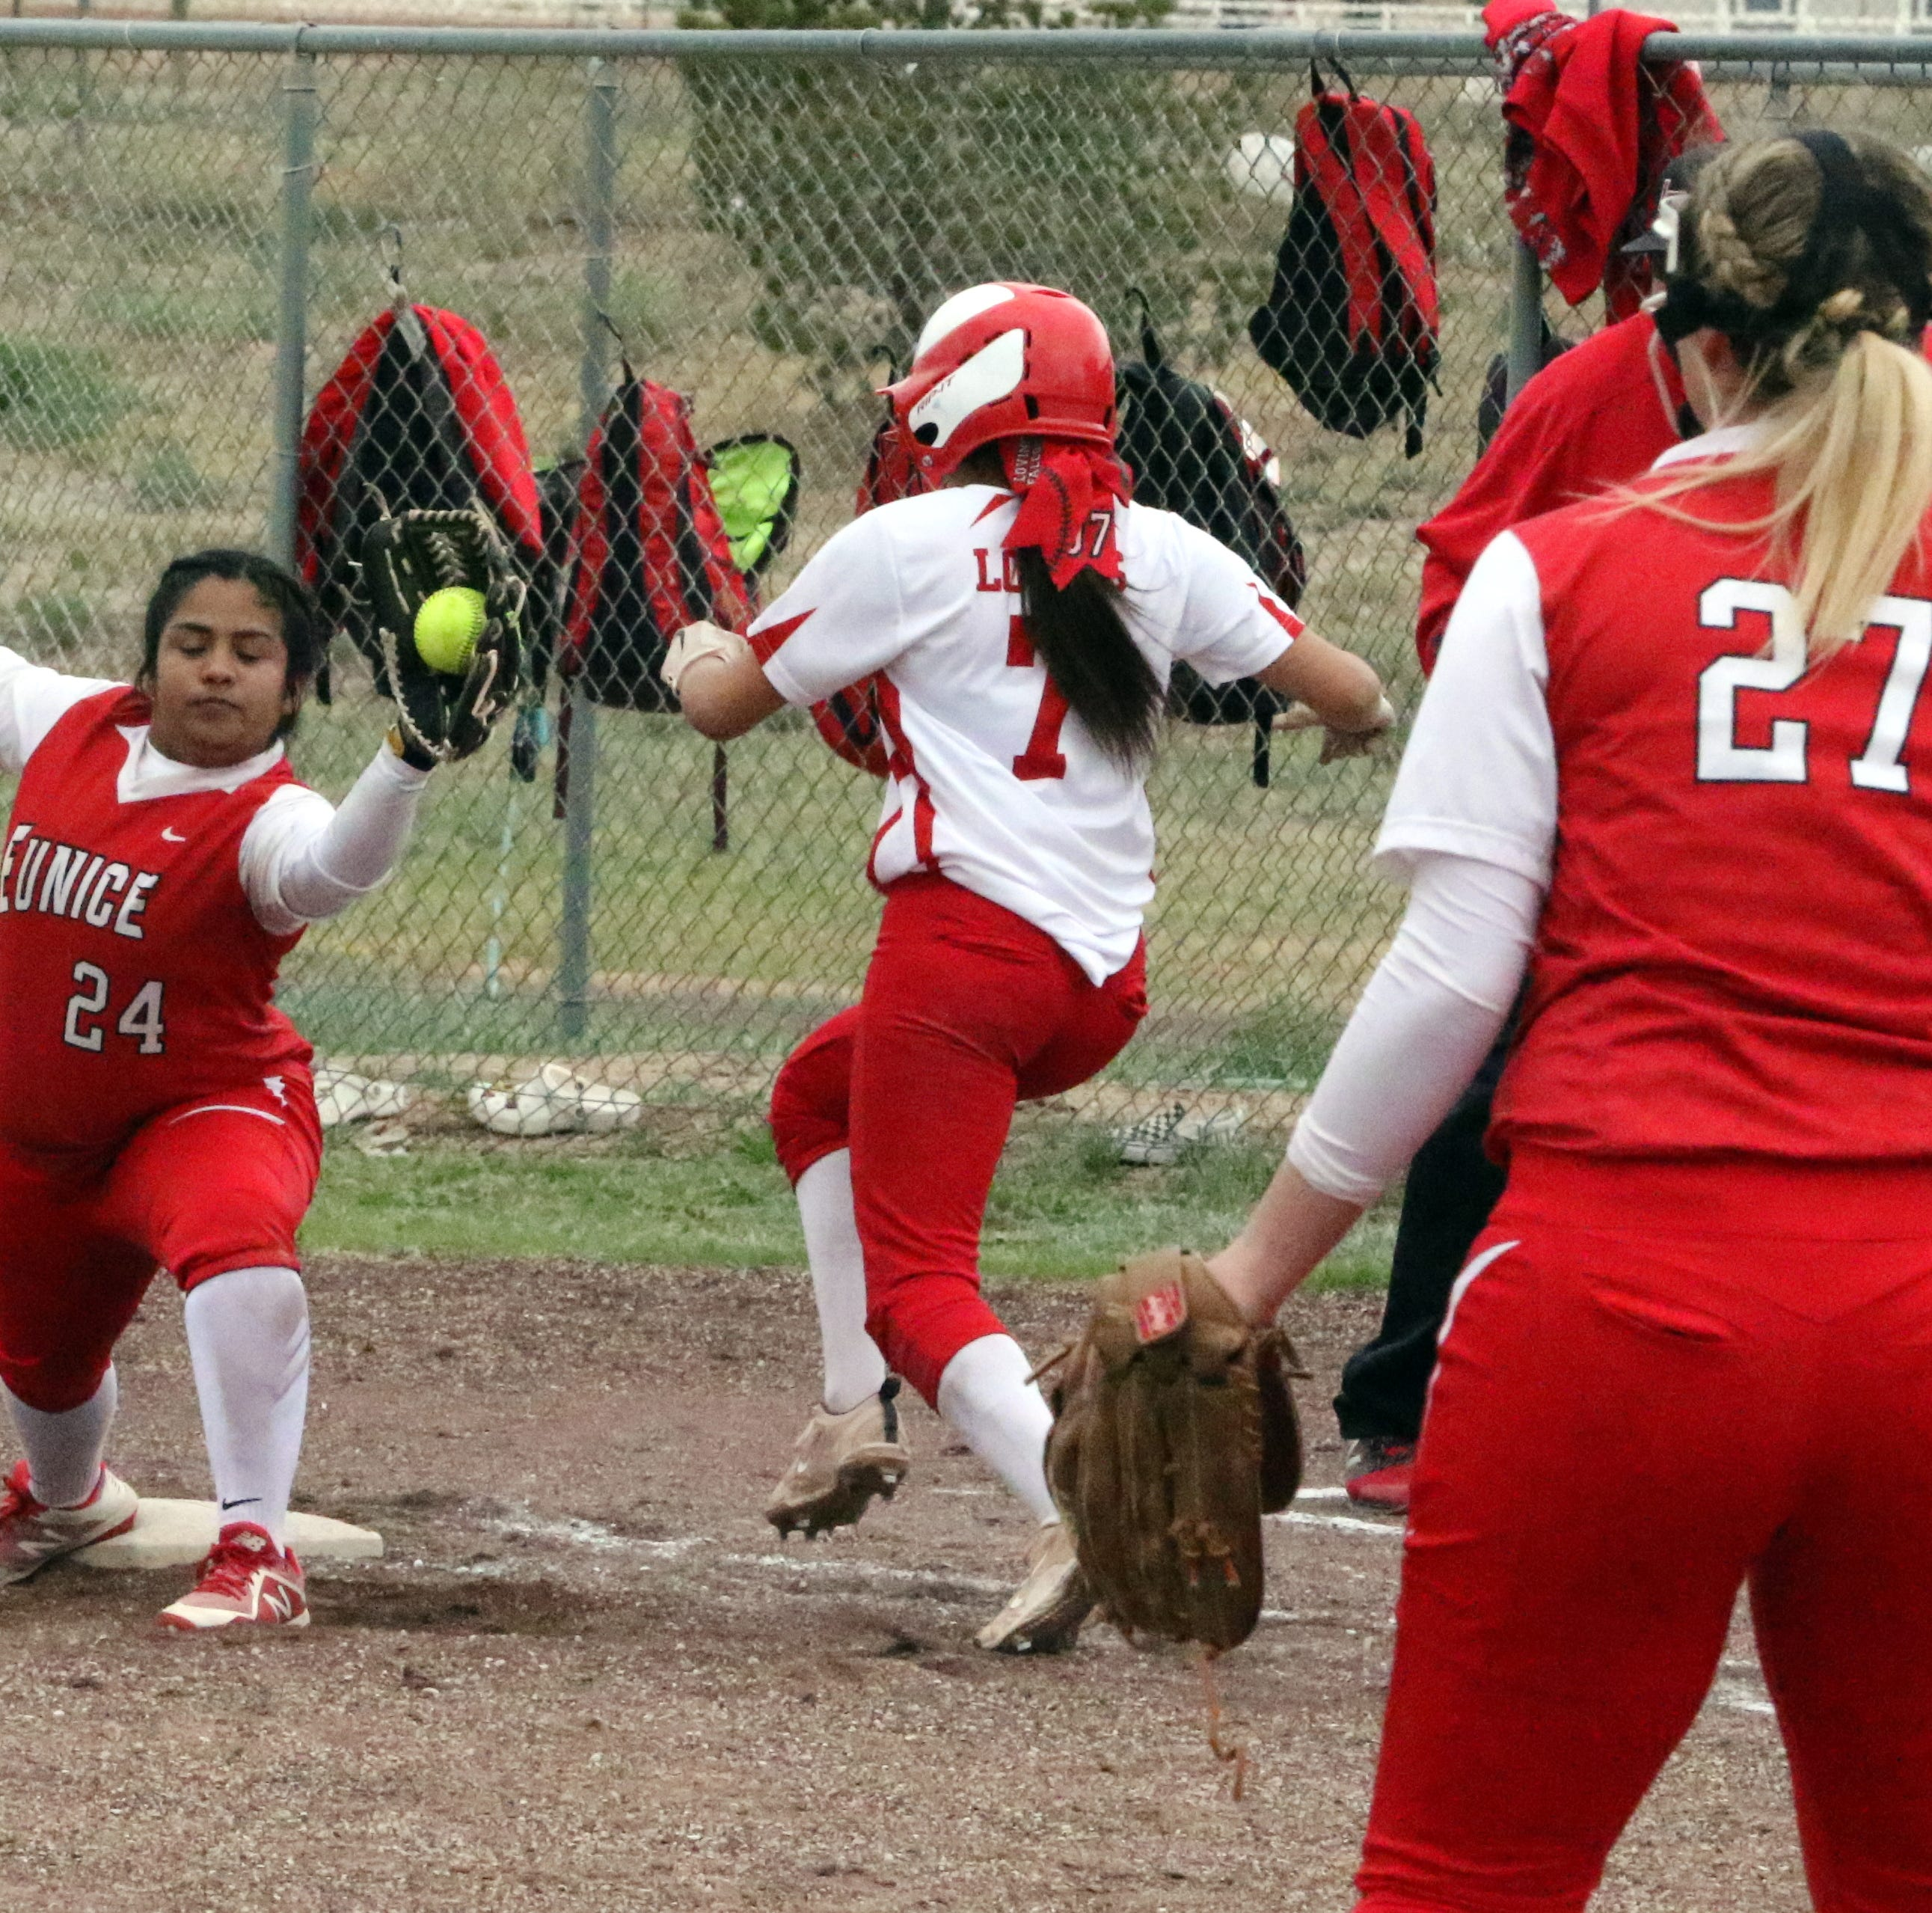 Loving splits series with Eunice to start district play